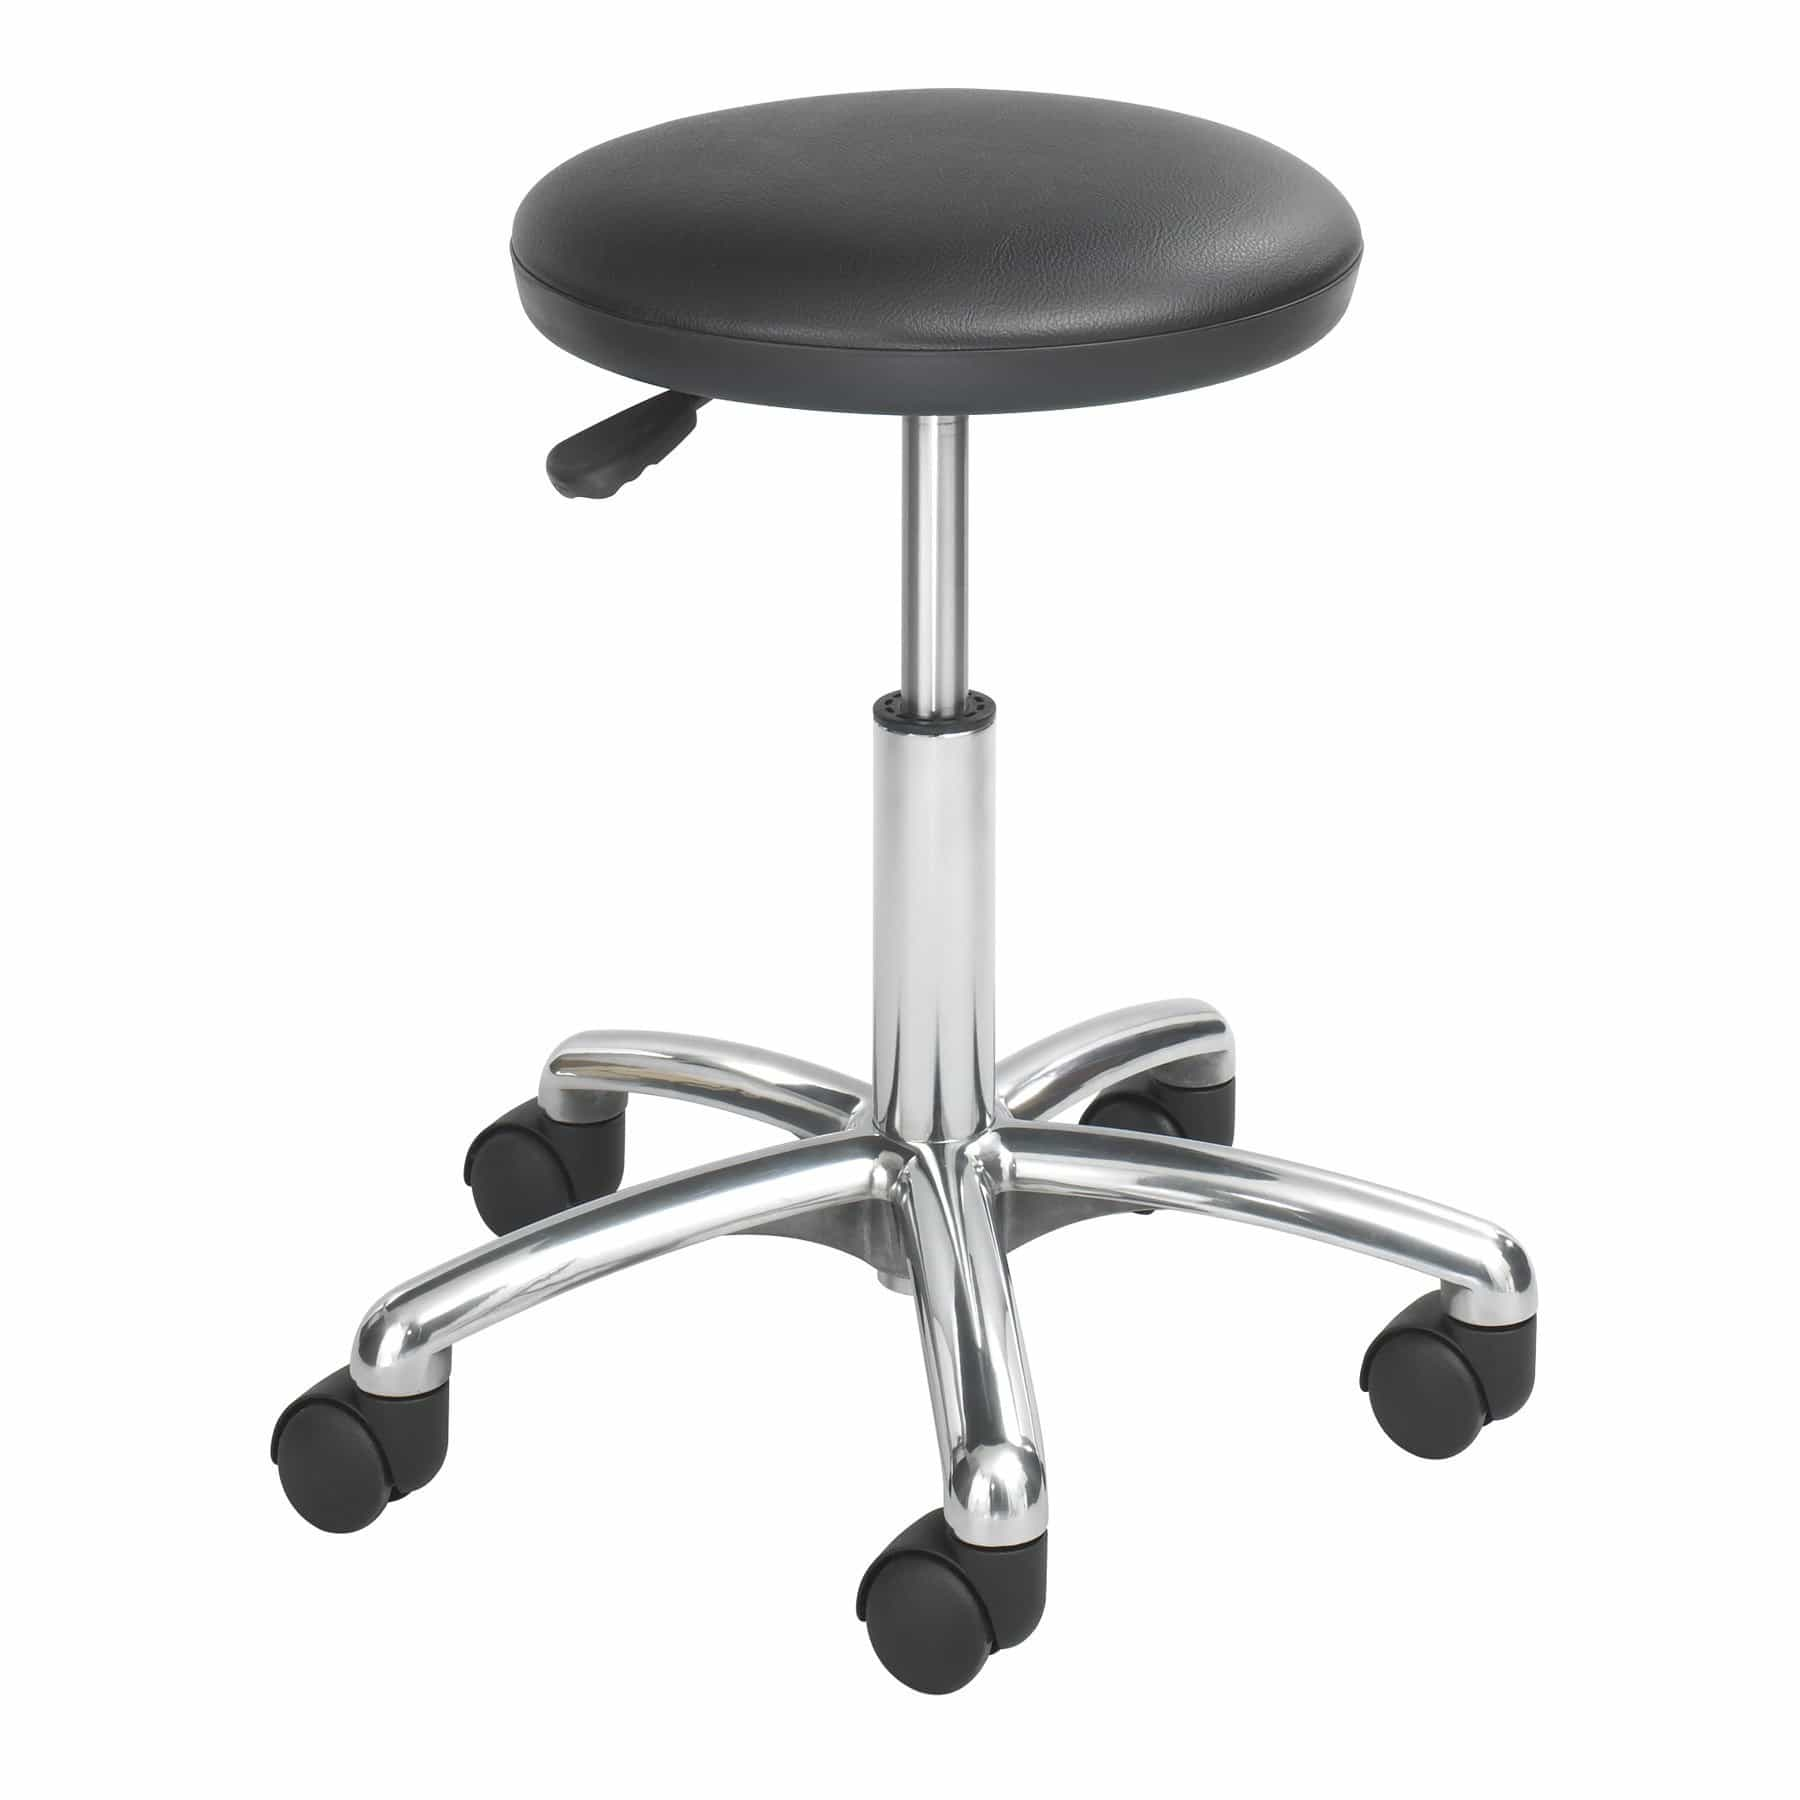 bedinhome - 3434BL Seat Height Adjustment Swivel 5-inch Pneumatic lift Economy Lab Black Rolling Stool With 2 Inch Swivel Casters - Safco - Lab Stool